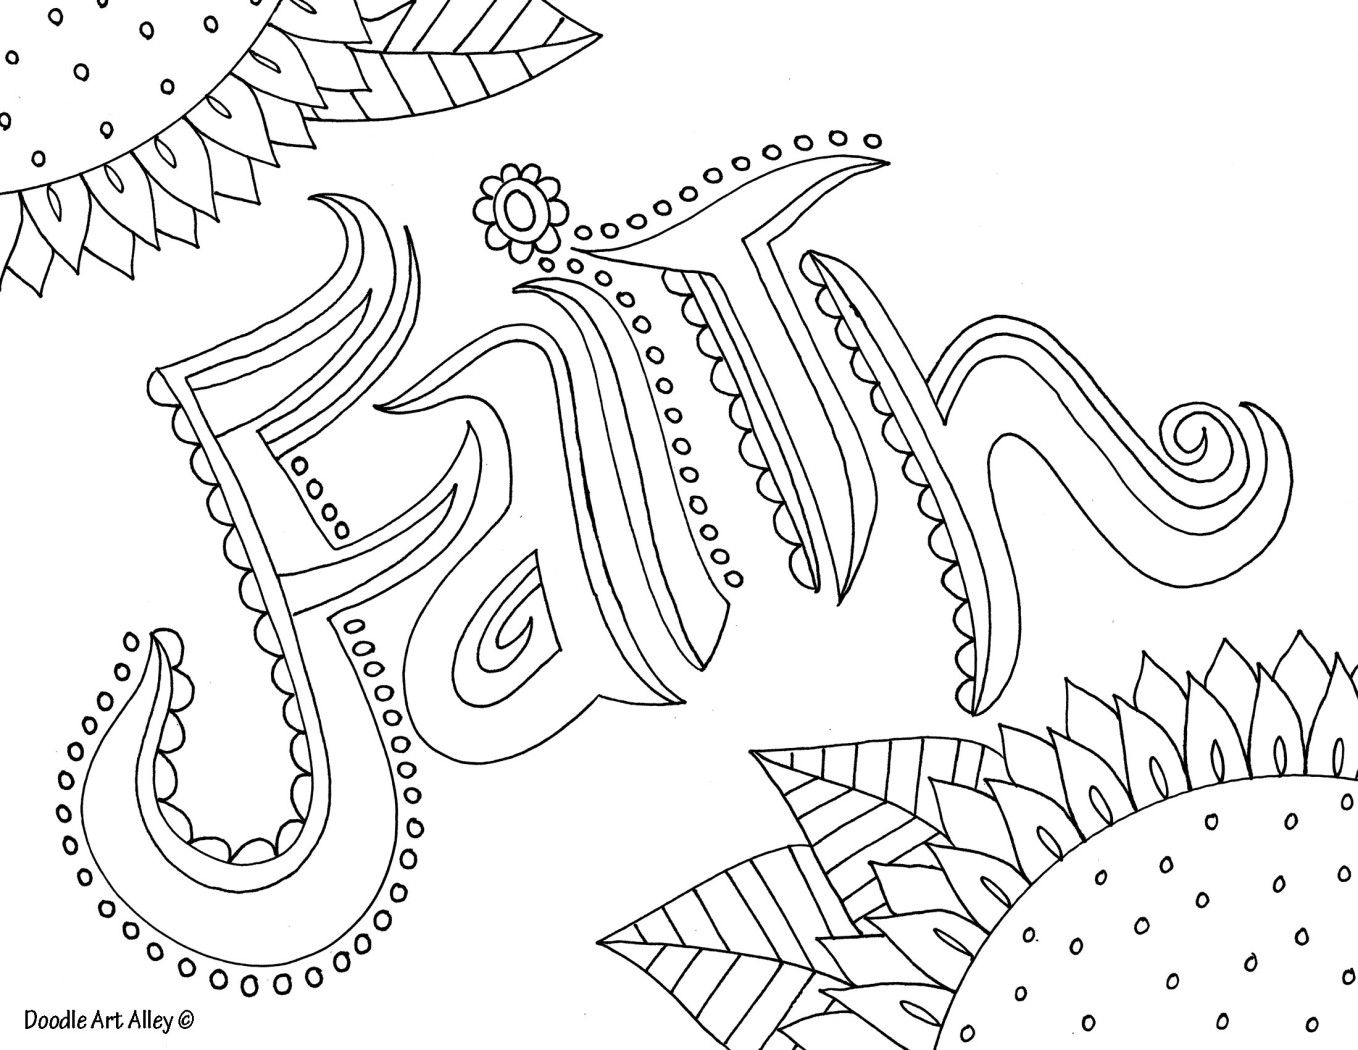 bible coloring pages for adults - HD 1035×800